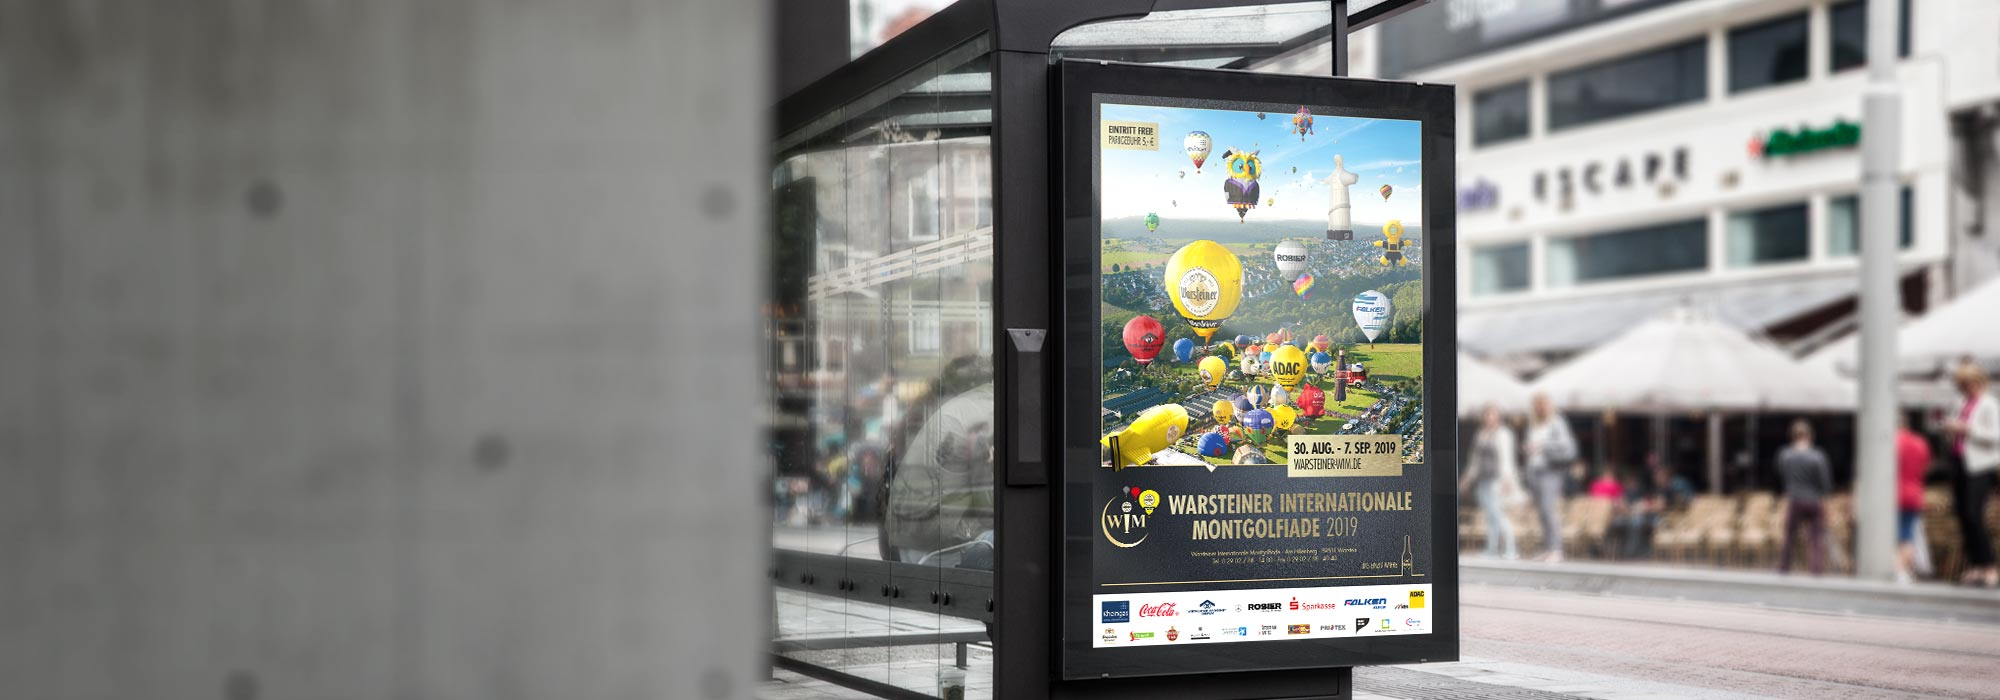 Warsteiner Internationale Montgolfiade Plakat